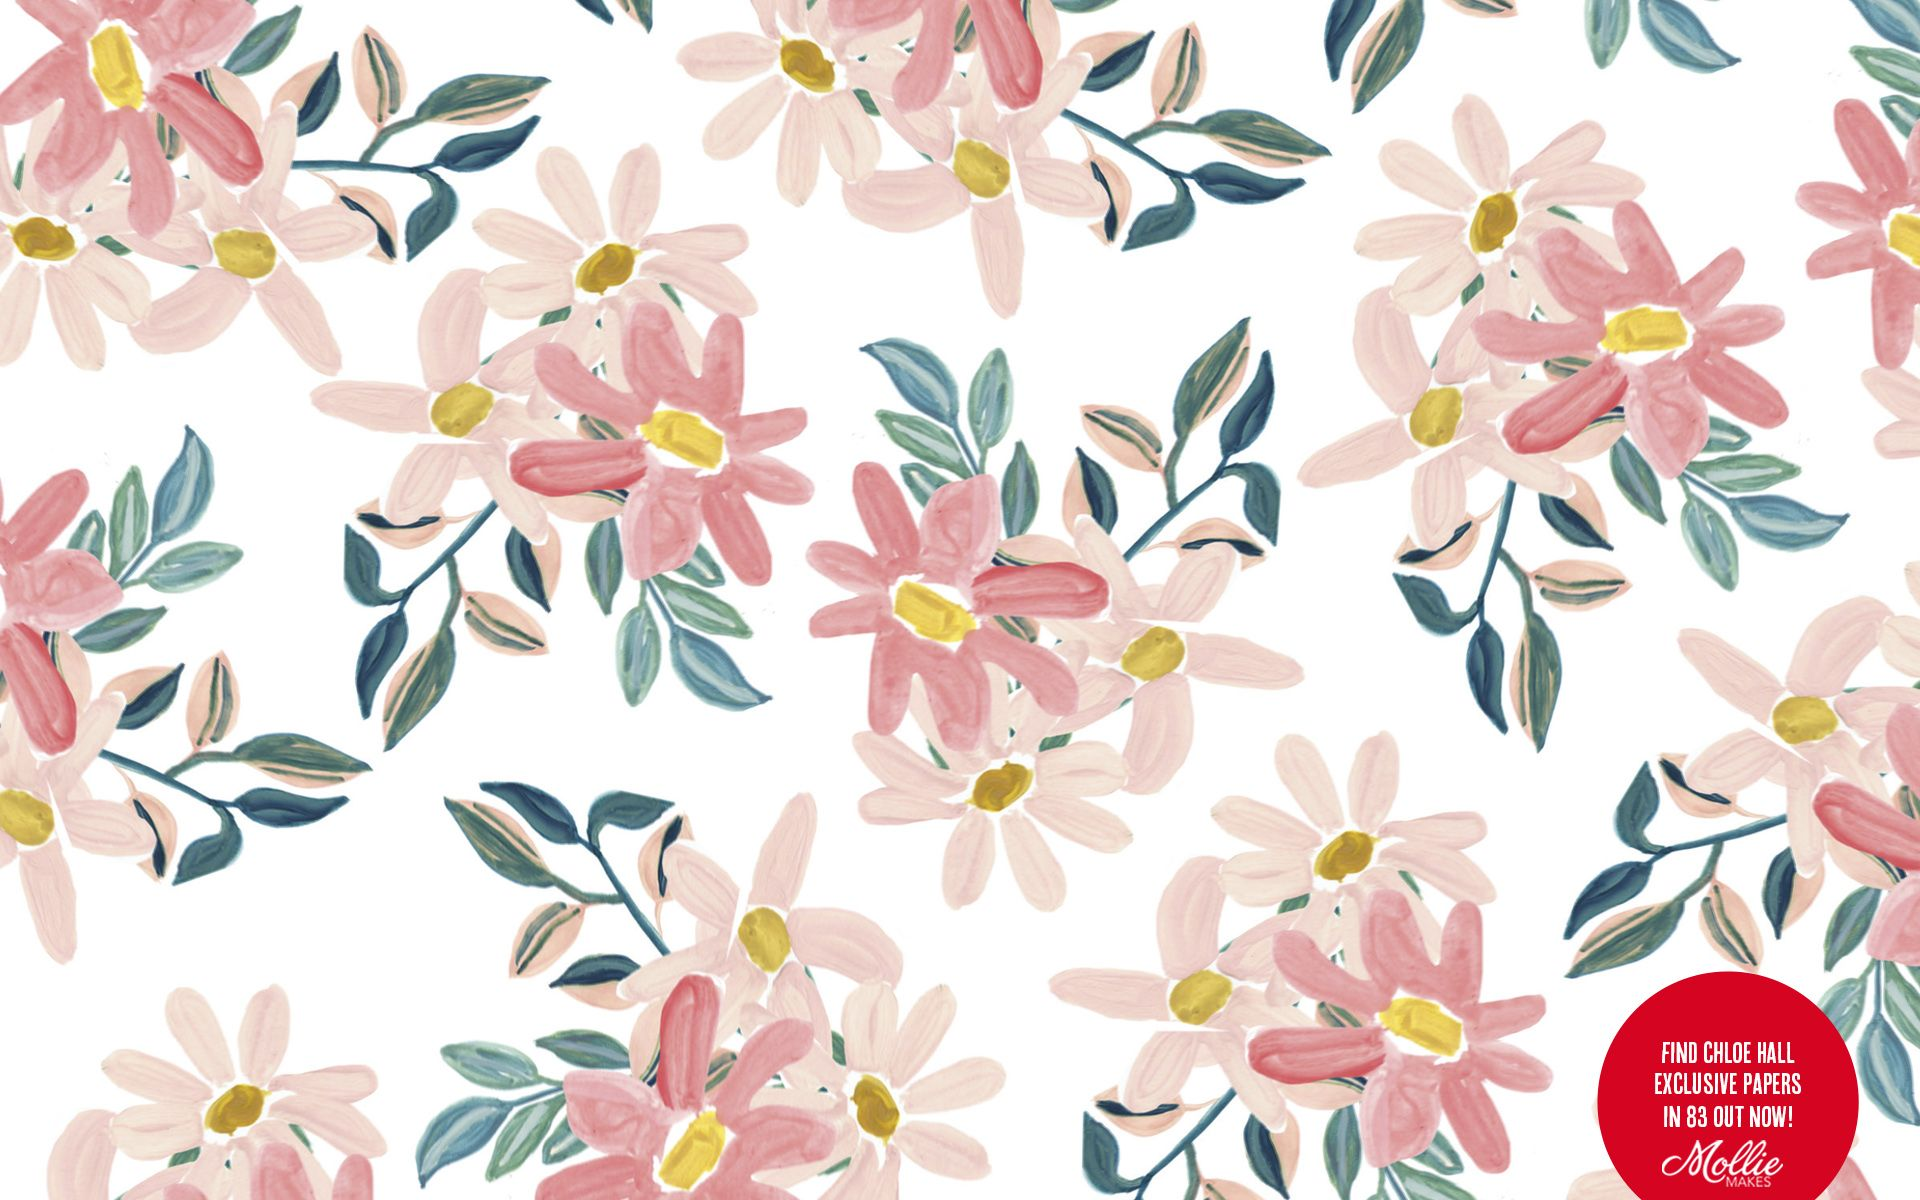 Spruce Up Your Desktop Background With This Floral Design By Chloe